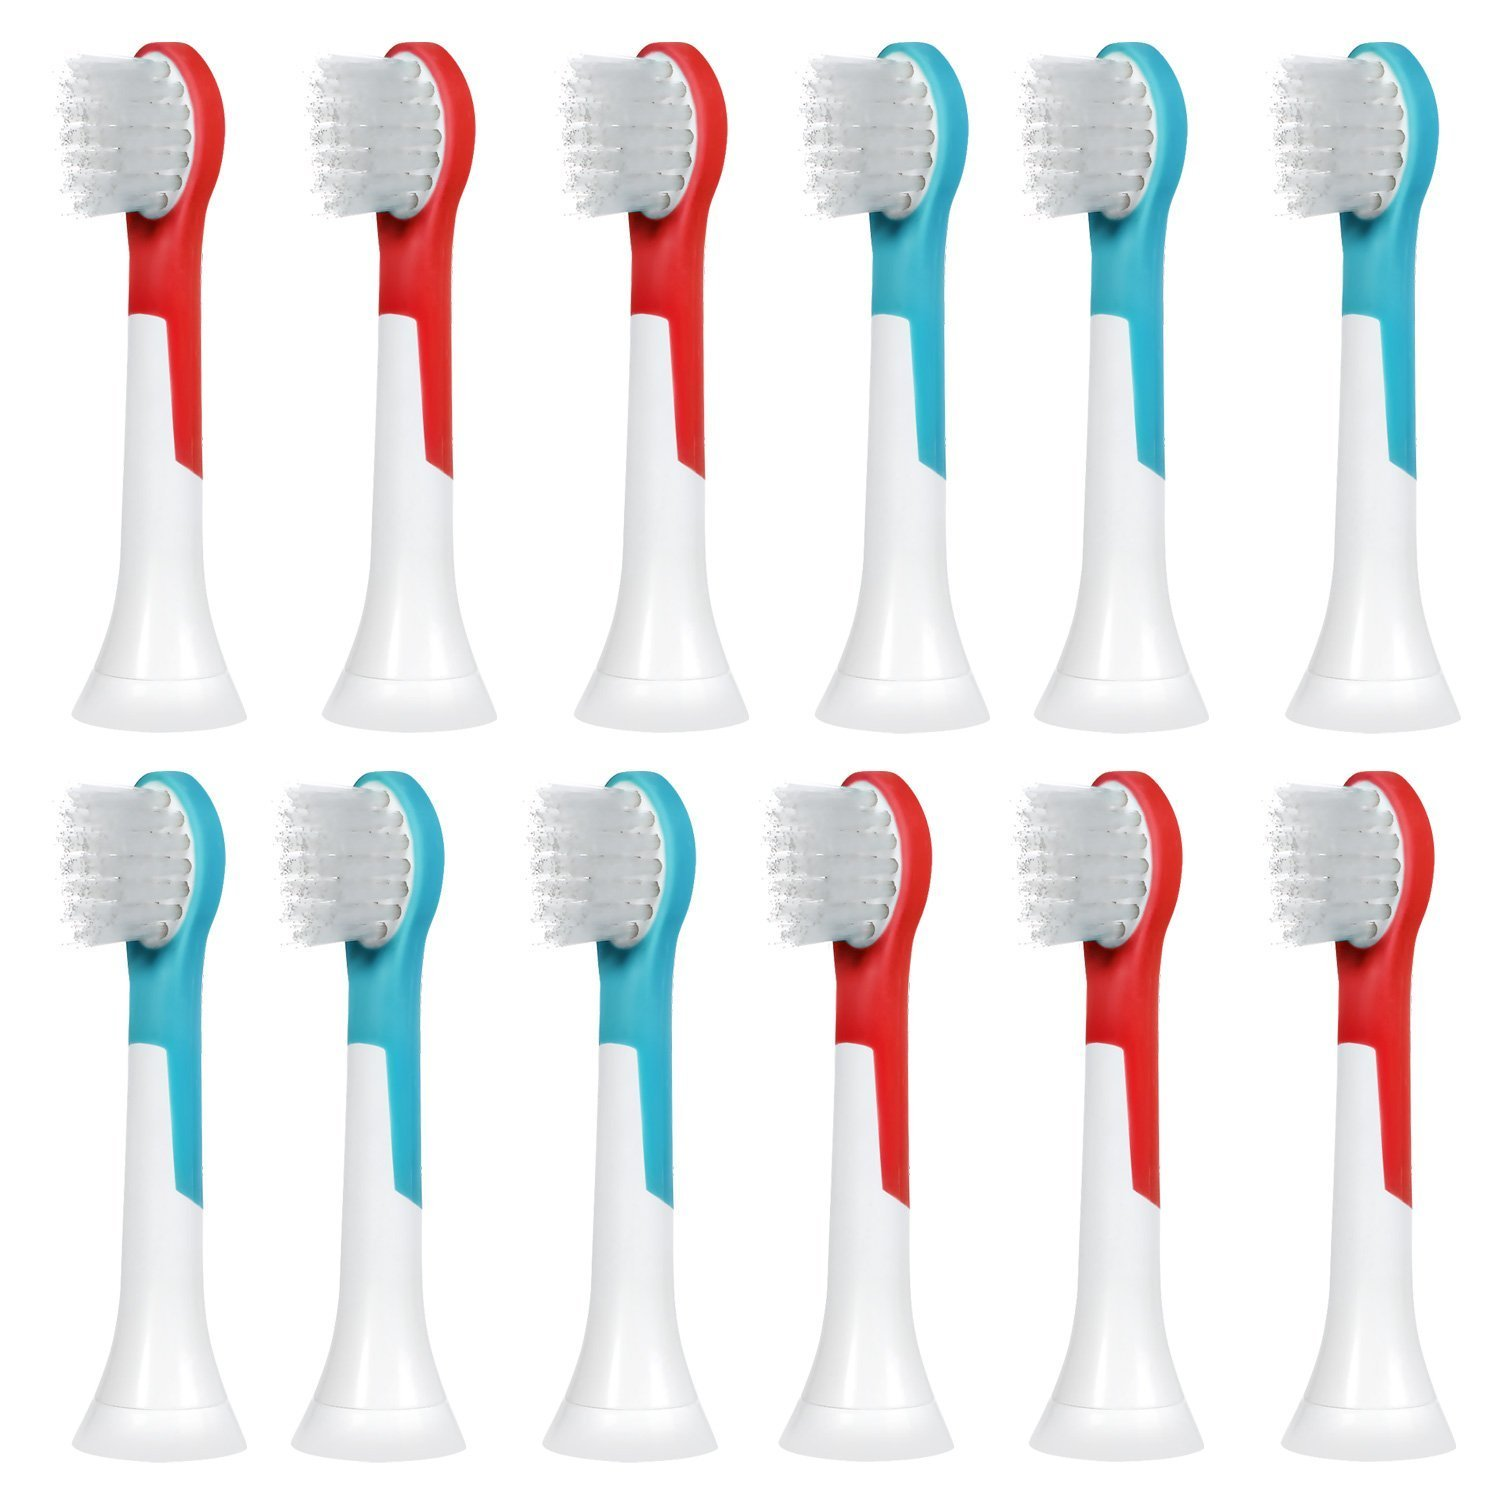 12 pcs (3x4) E-Cron® Toothbrush heads. Philips Sonicare Kids Small Replacement.Spare heads are Fully Compatible With The Following Philips Electric ToothBrush Models: All Sonicare For Kids Models. PCA-6014-1x4